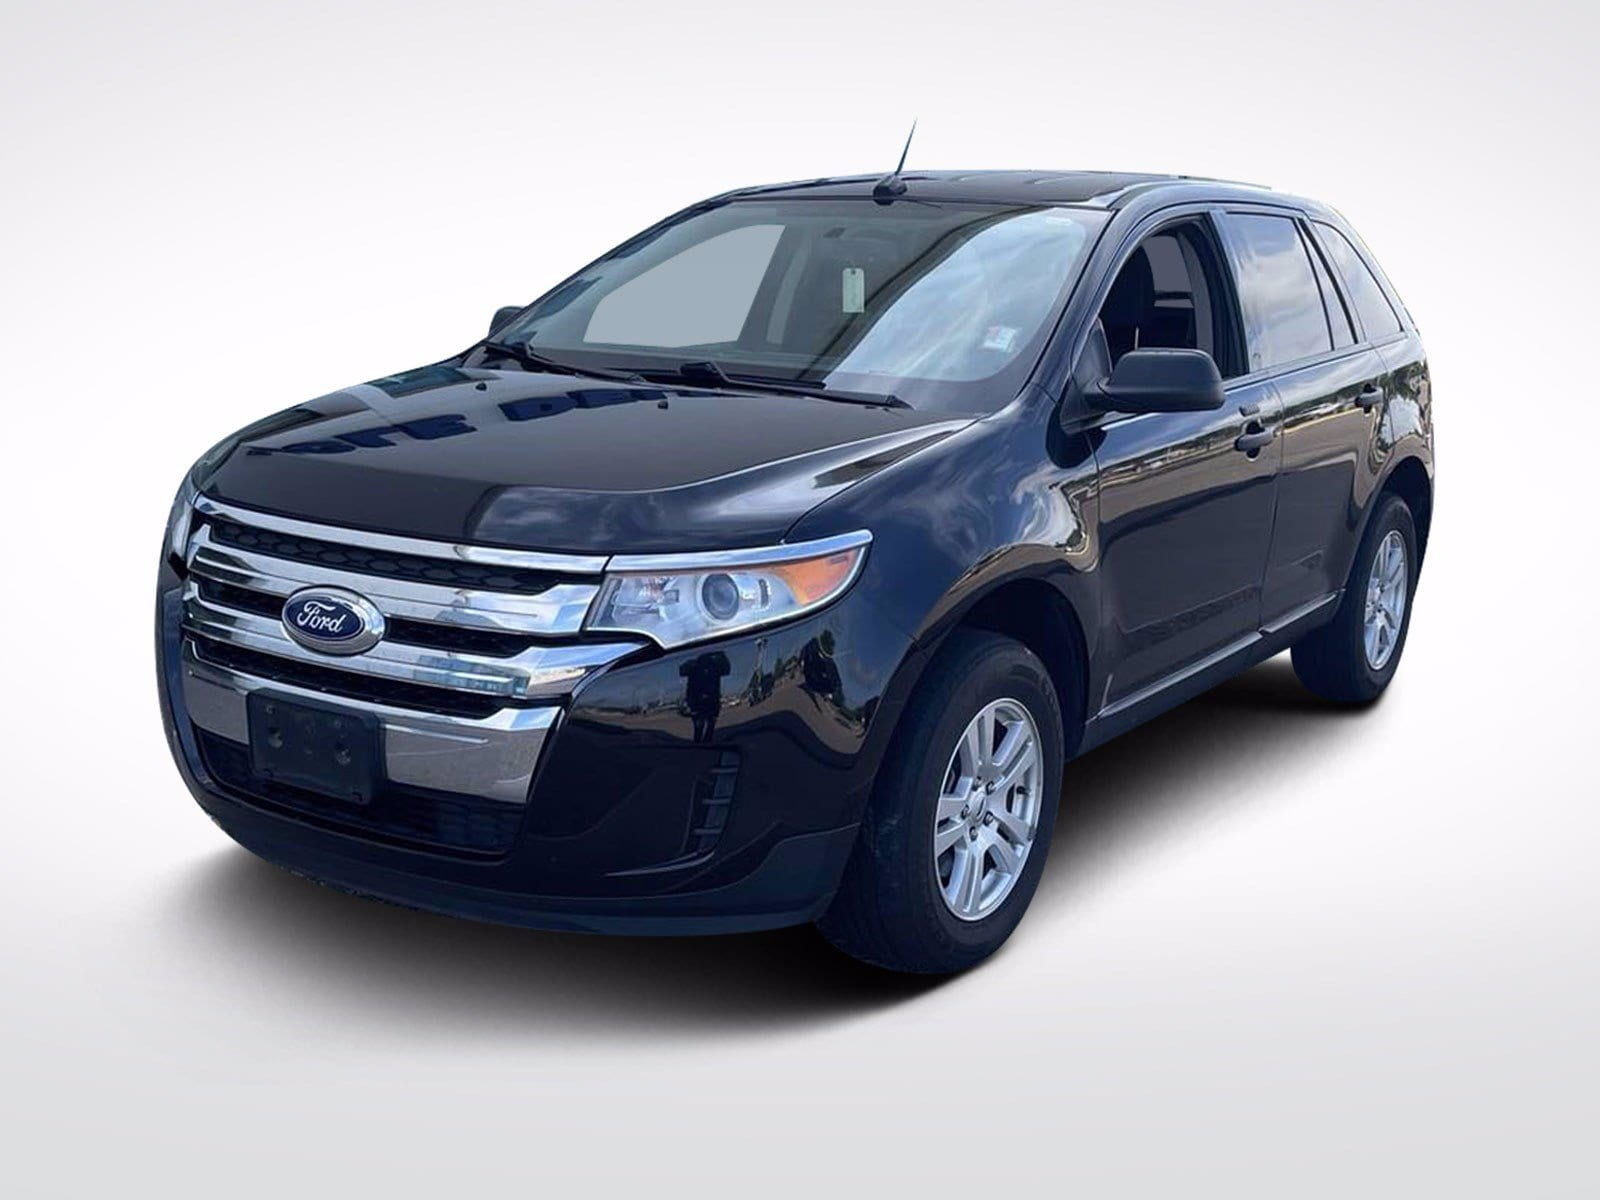 Used 2013 Ford Edge SE with VIN 2FMDK3GC8DBA58791 for sale in Baxter, Minnesota